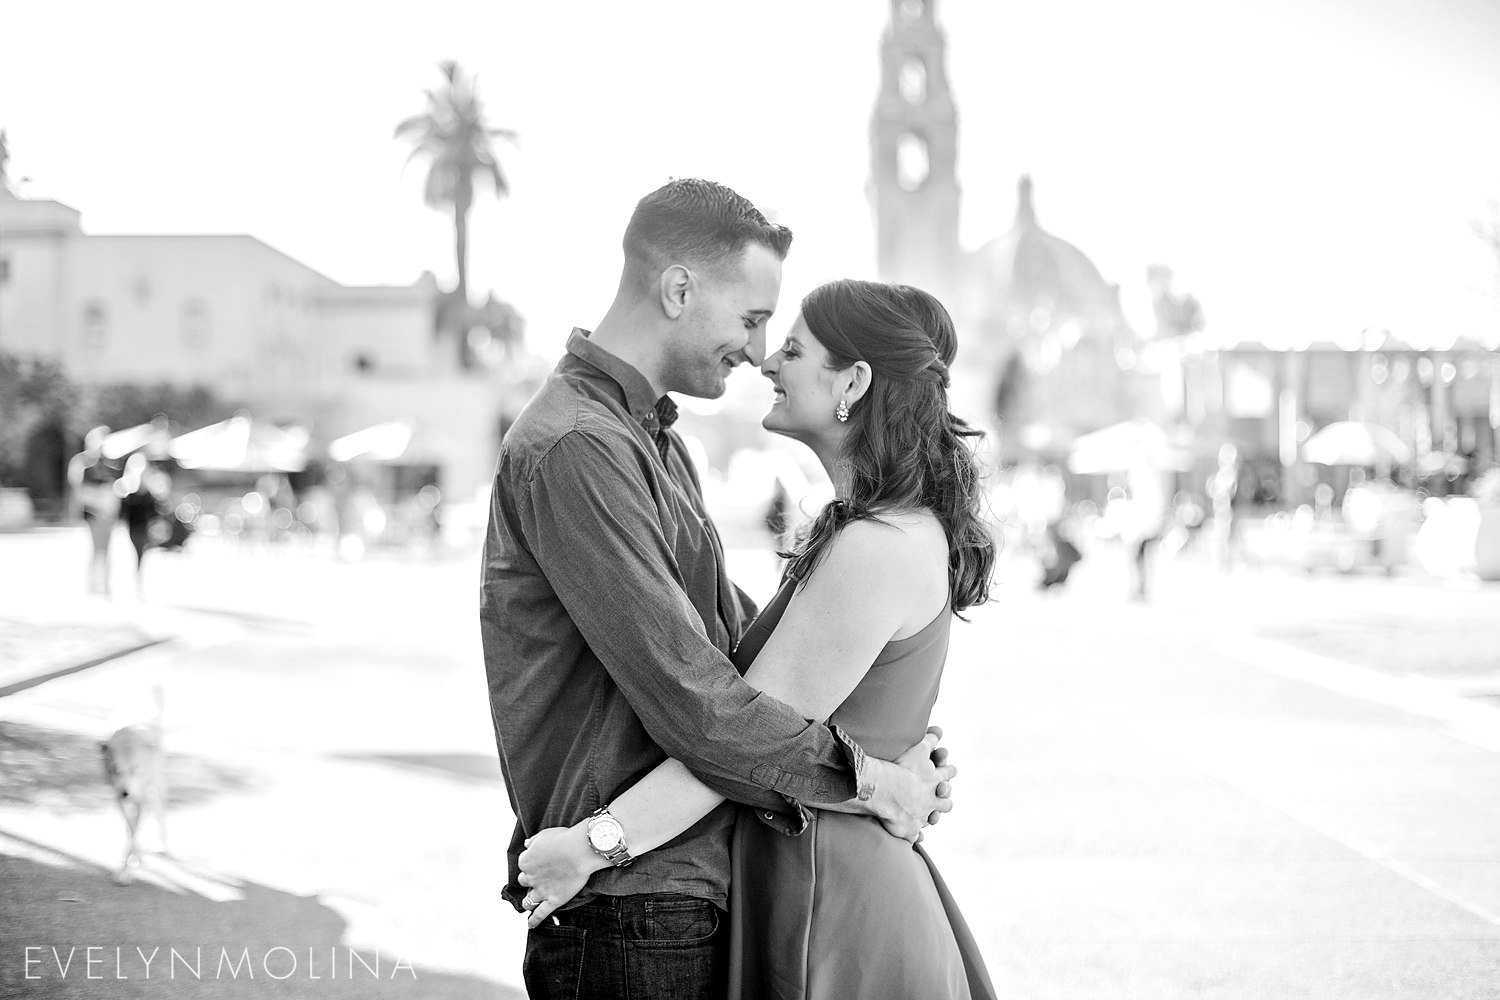 Sunset Cliffs Engagement Session - Carly and Alex - Evelyn Molina Photography_0003.jpg